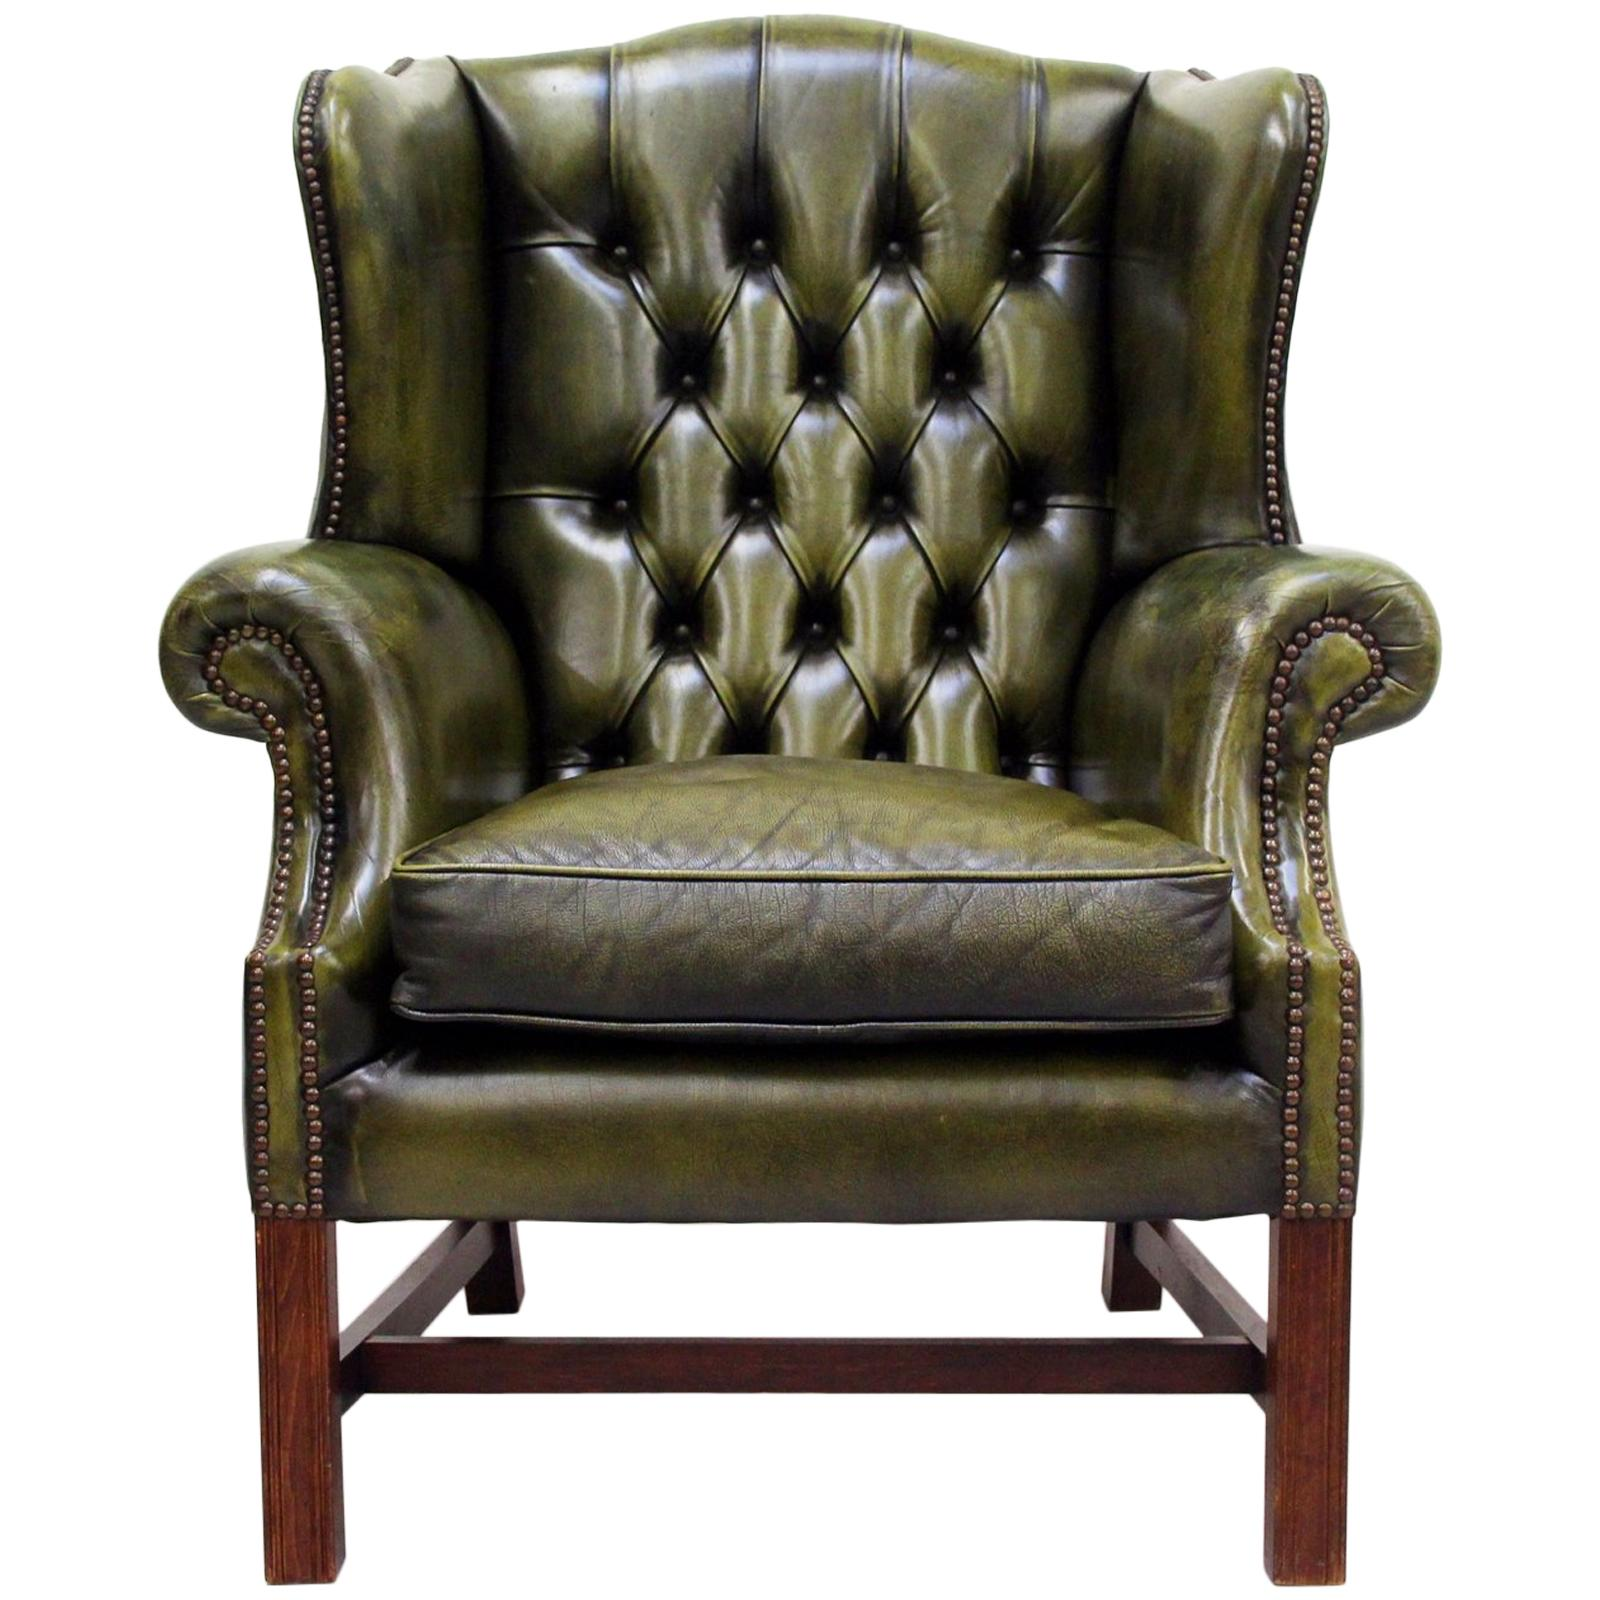 Green Leather Armchairs 178 For Sale On 1stdibs